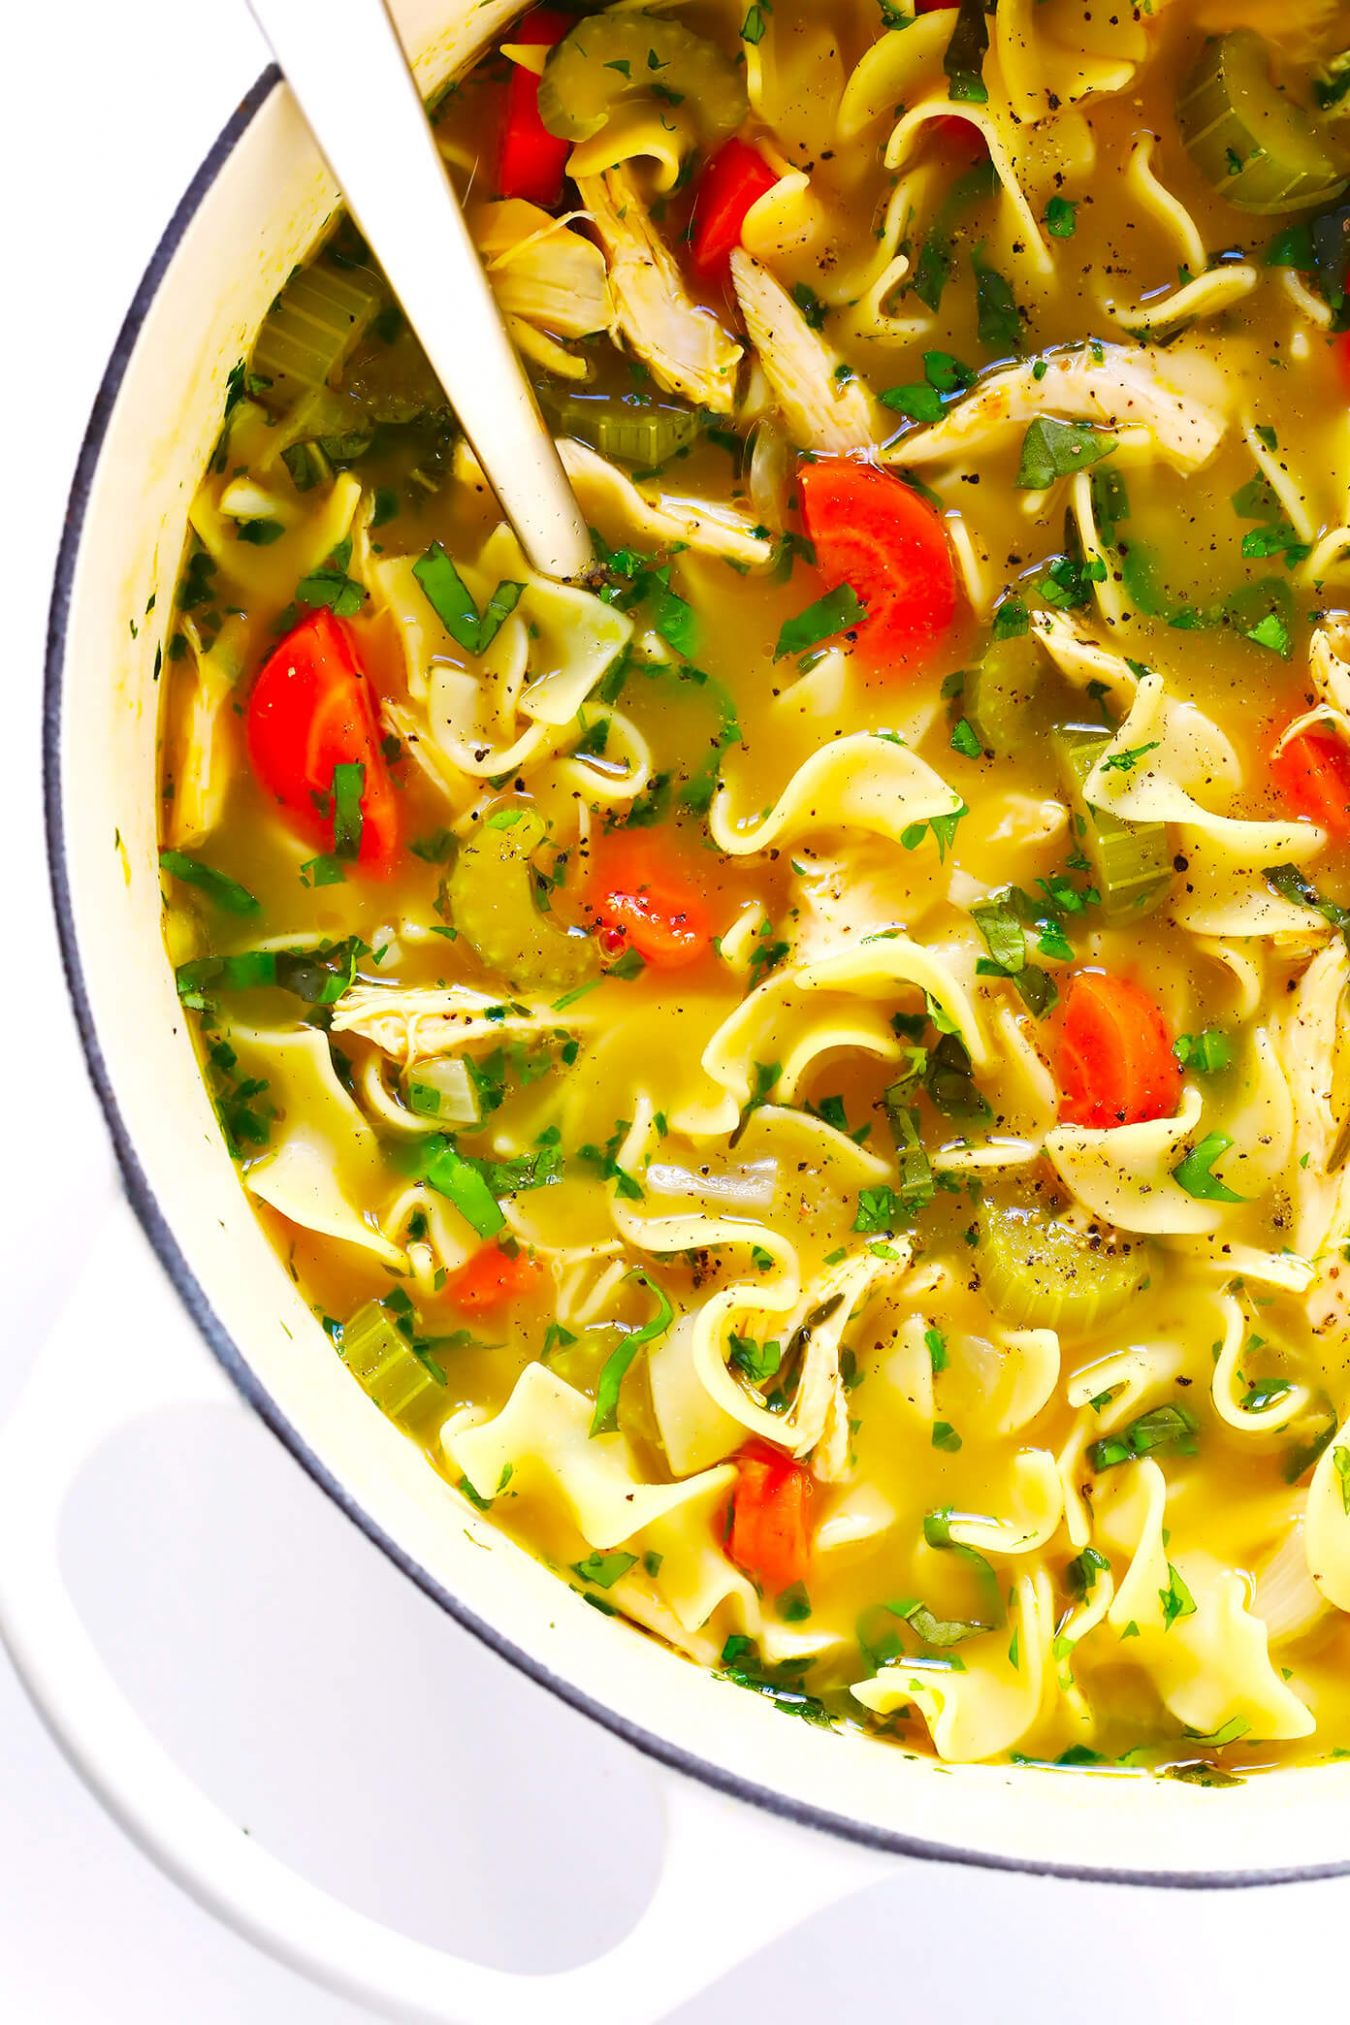 Herb-Loaded Chicken Noodle Soup - Recipes Chicken Noodle Soup